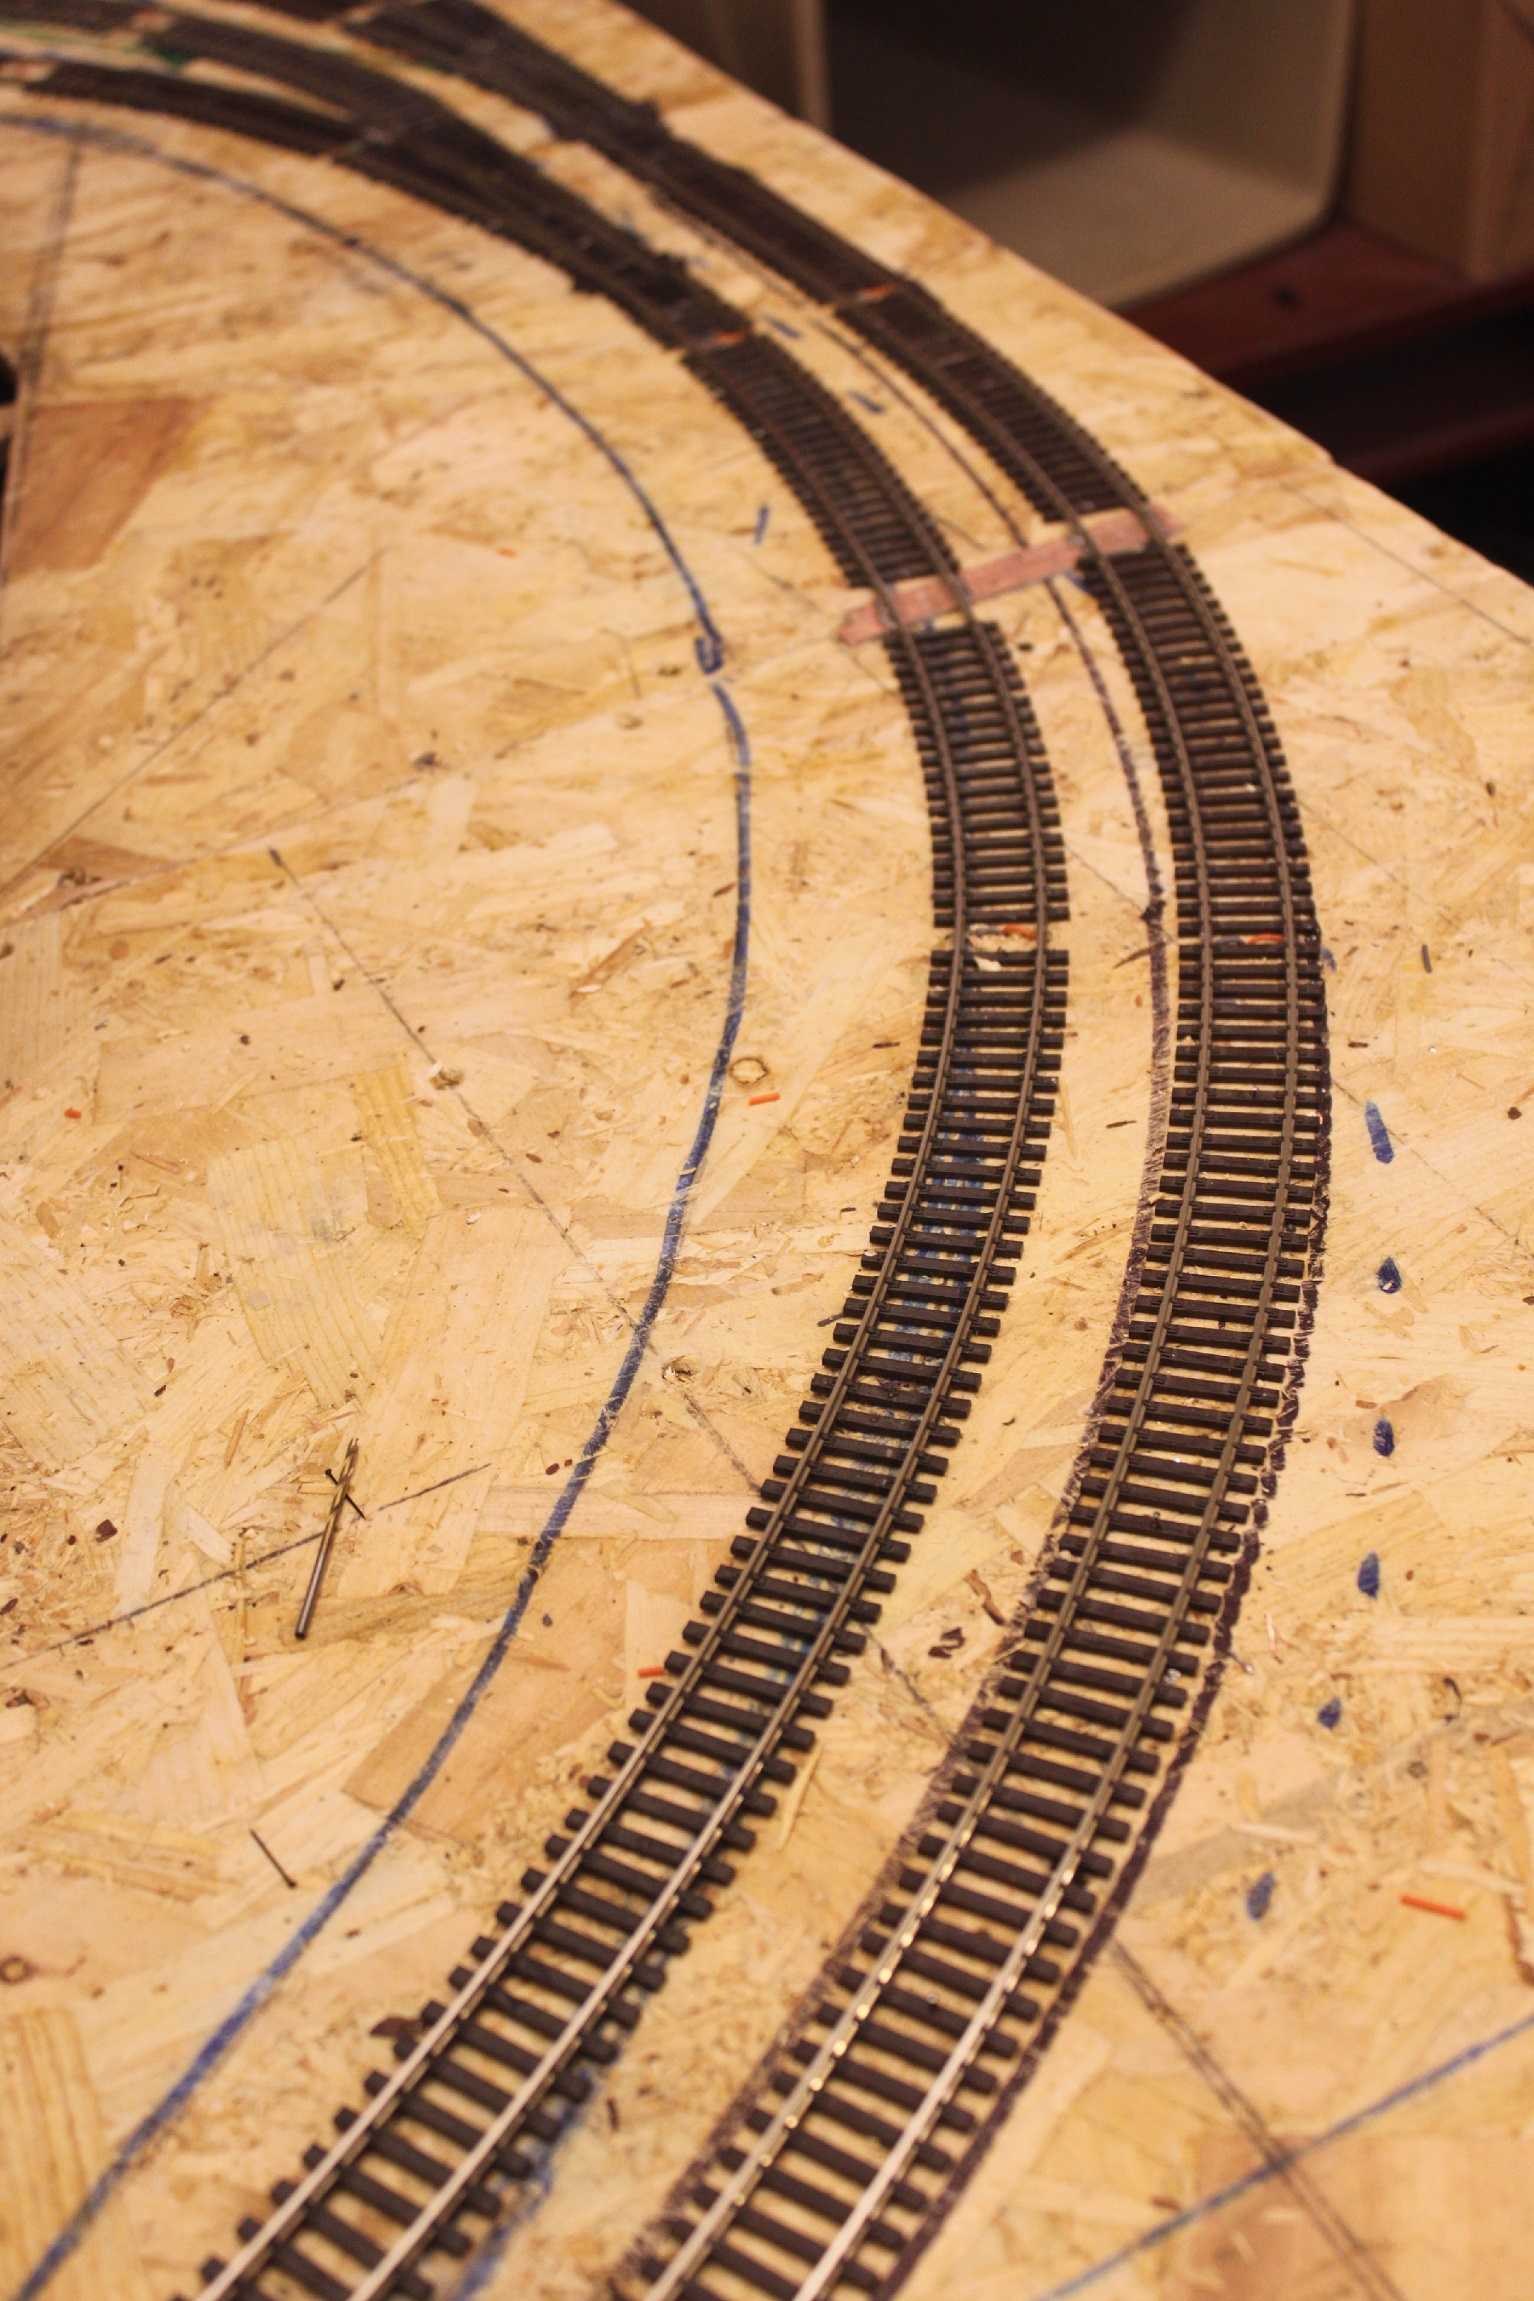 Track laying begins